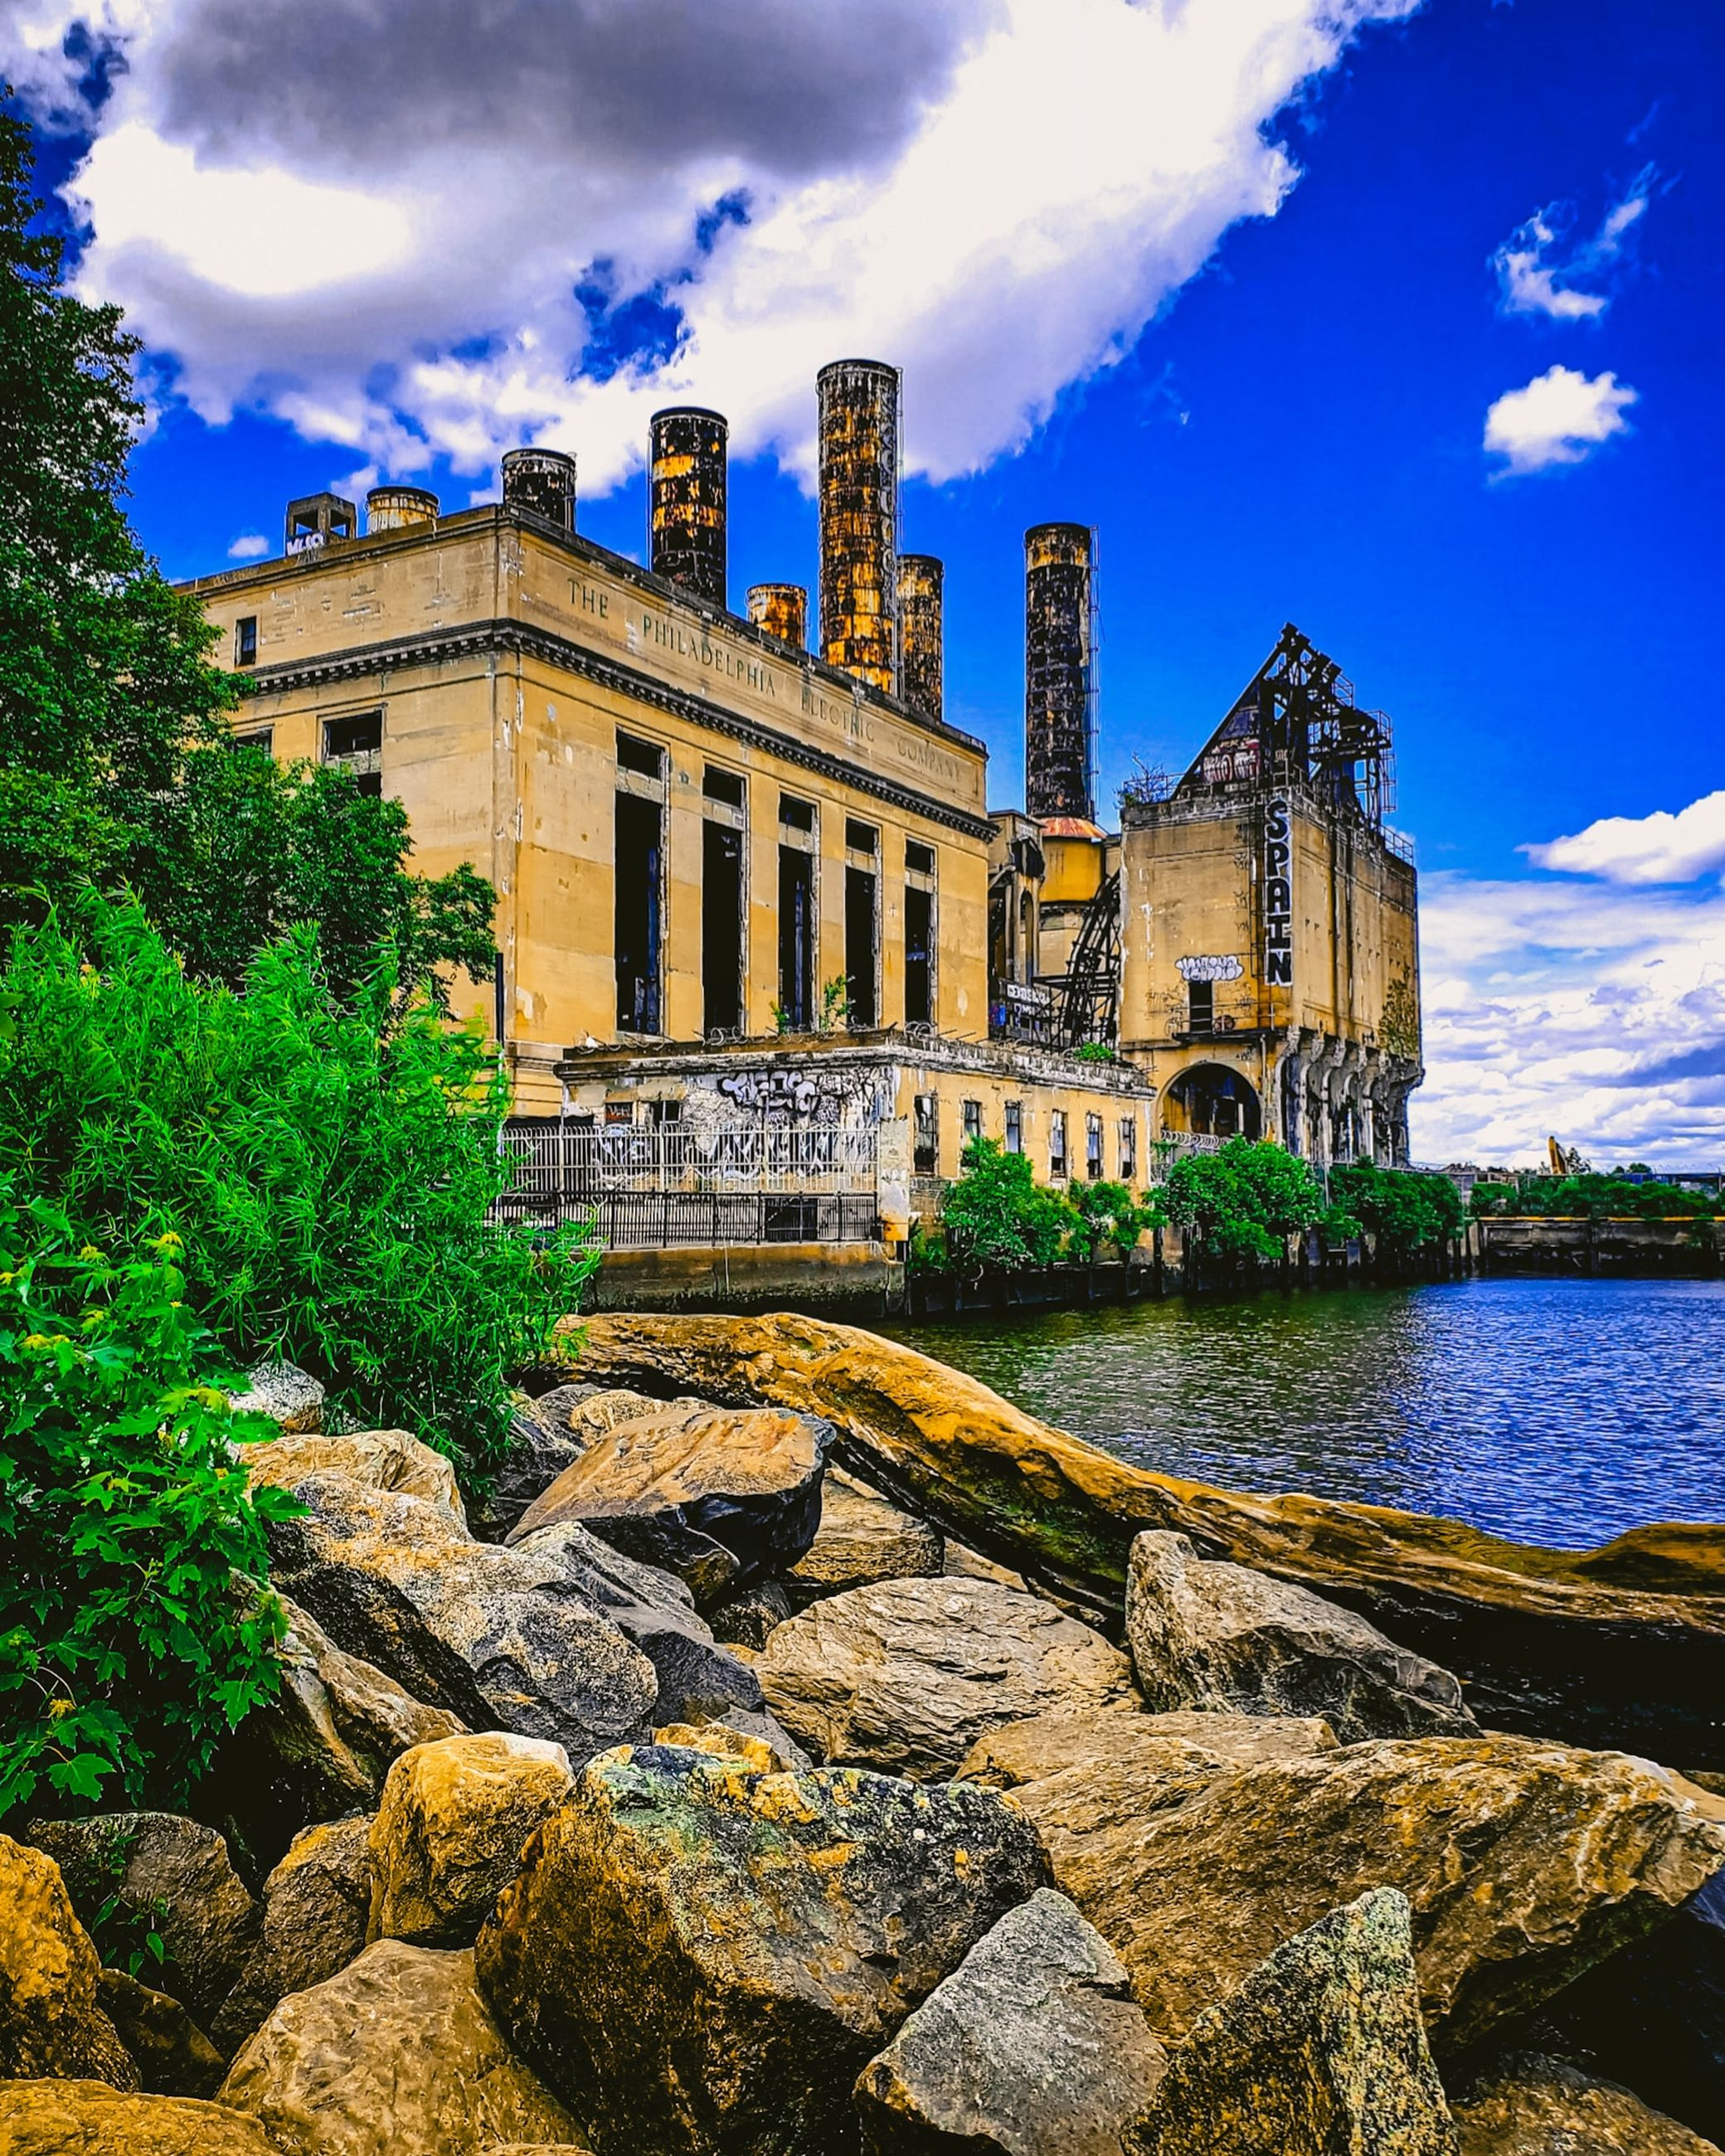 architecture, built structure, building exterior, sky, cloud, nature, travel destinations, history, water, the past, building, landmark, castle, château, travel, city, plant, tourism, no people, tree, rock, reflection, vacation, cityscape, blue, outdoors, house, estate, mansion, beauty in nature, river, old, day